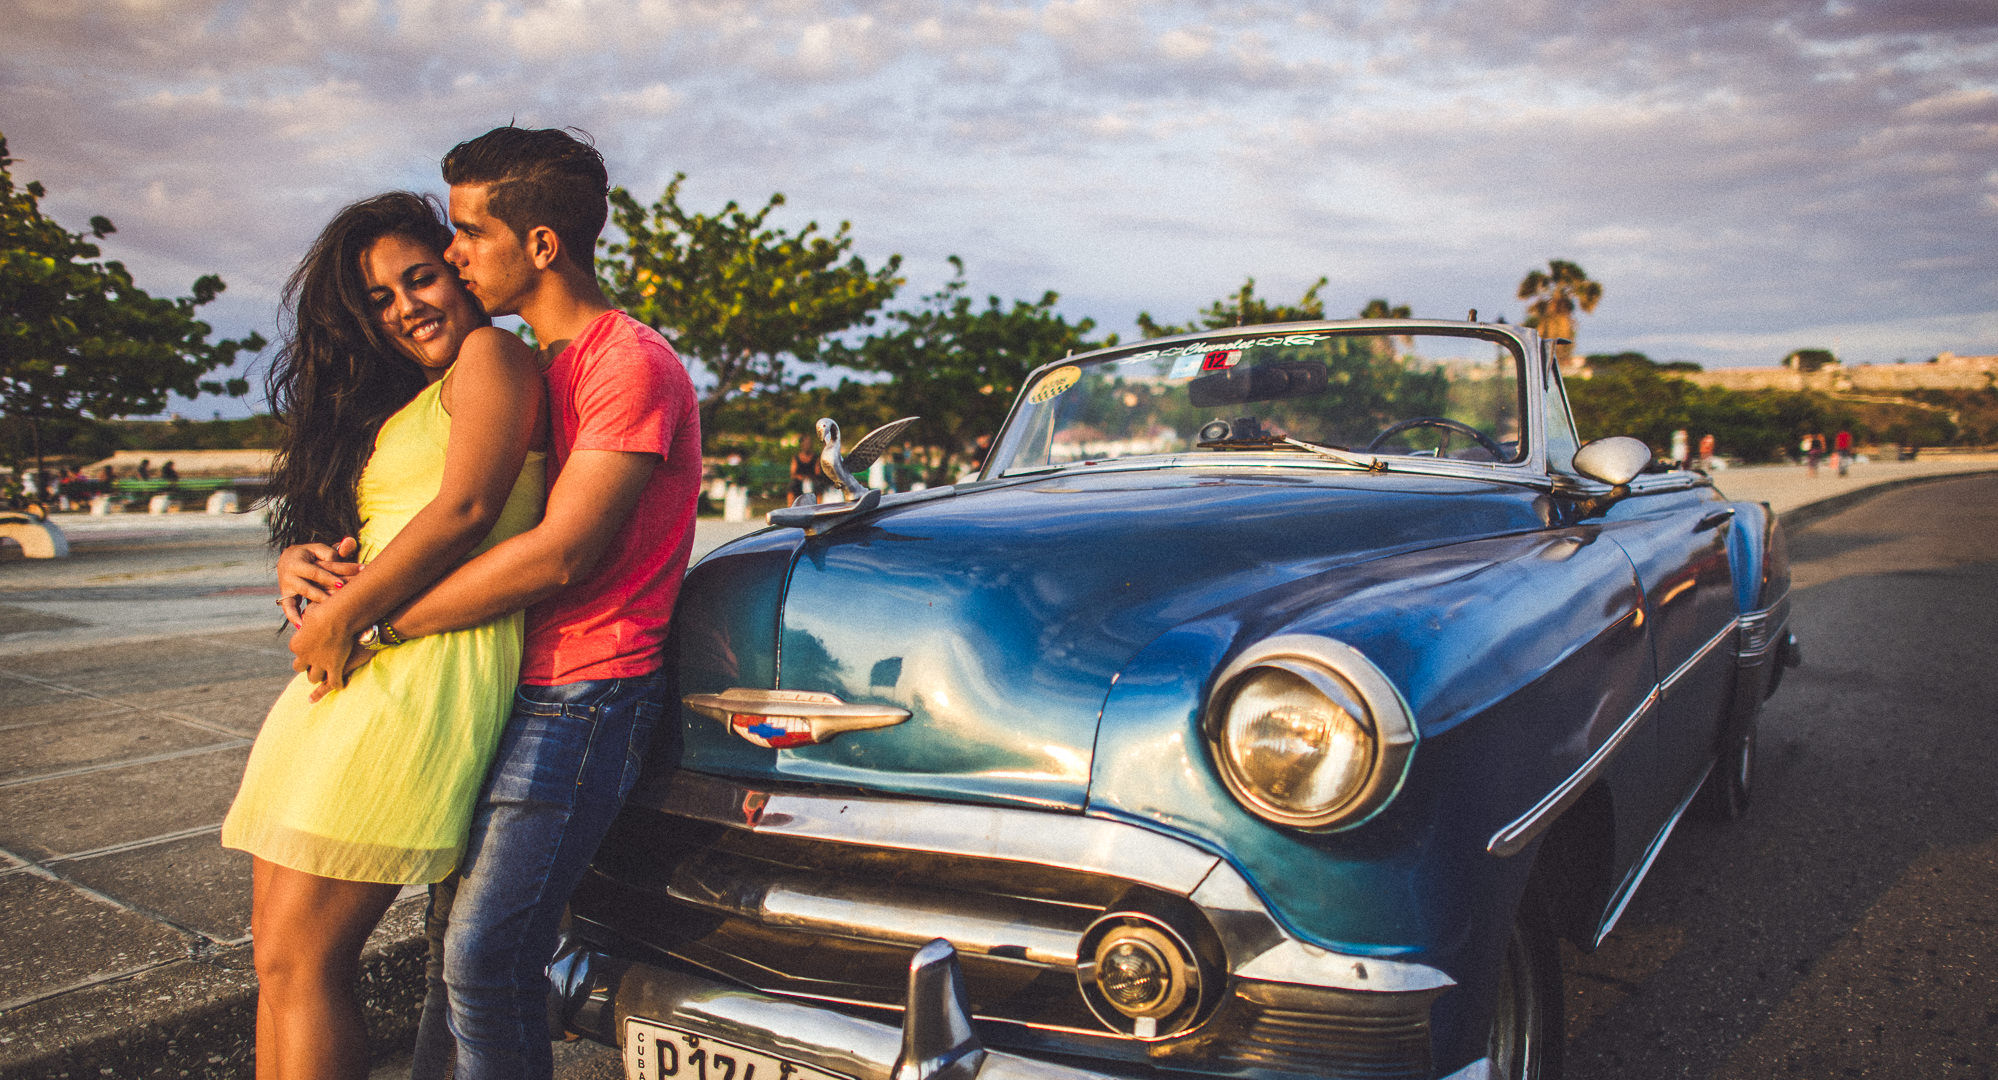 engagement session in Cuba